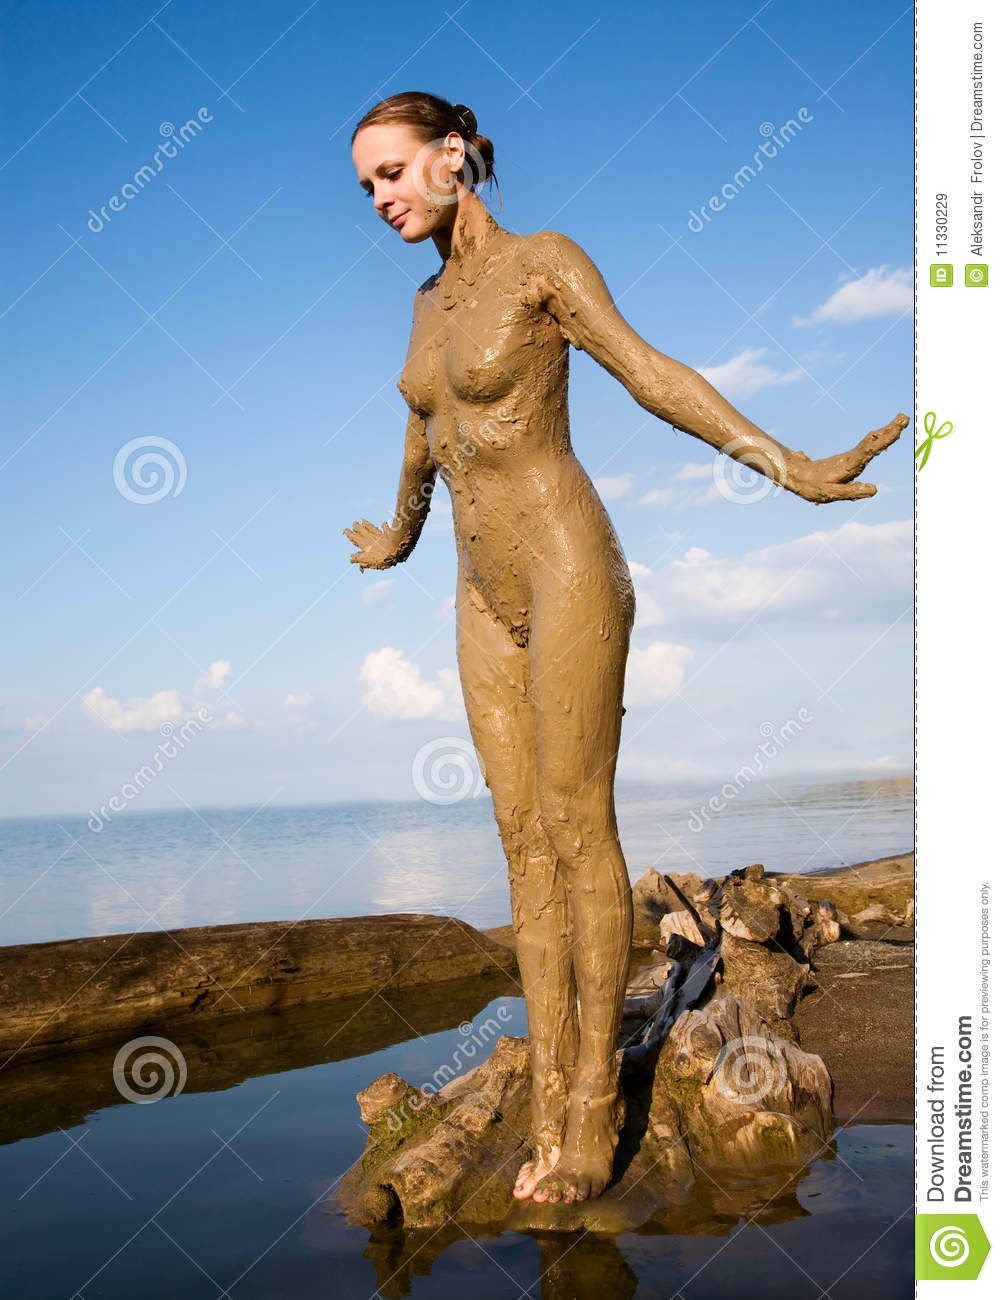 Nude Woman Mud Videos Free 30